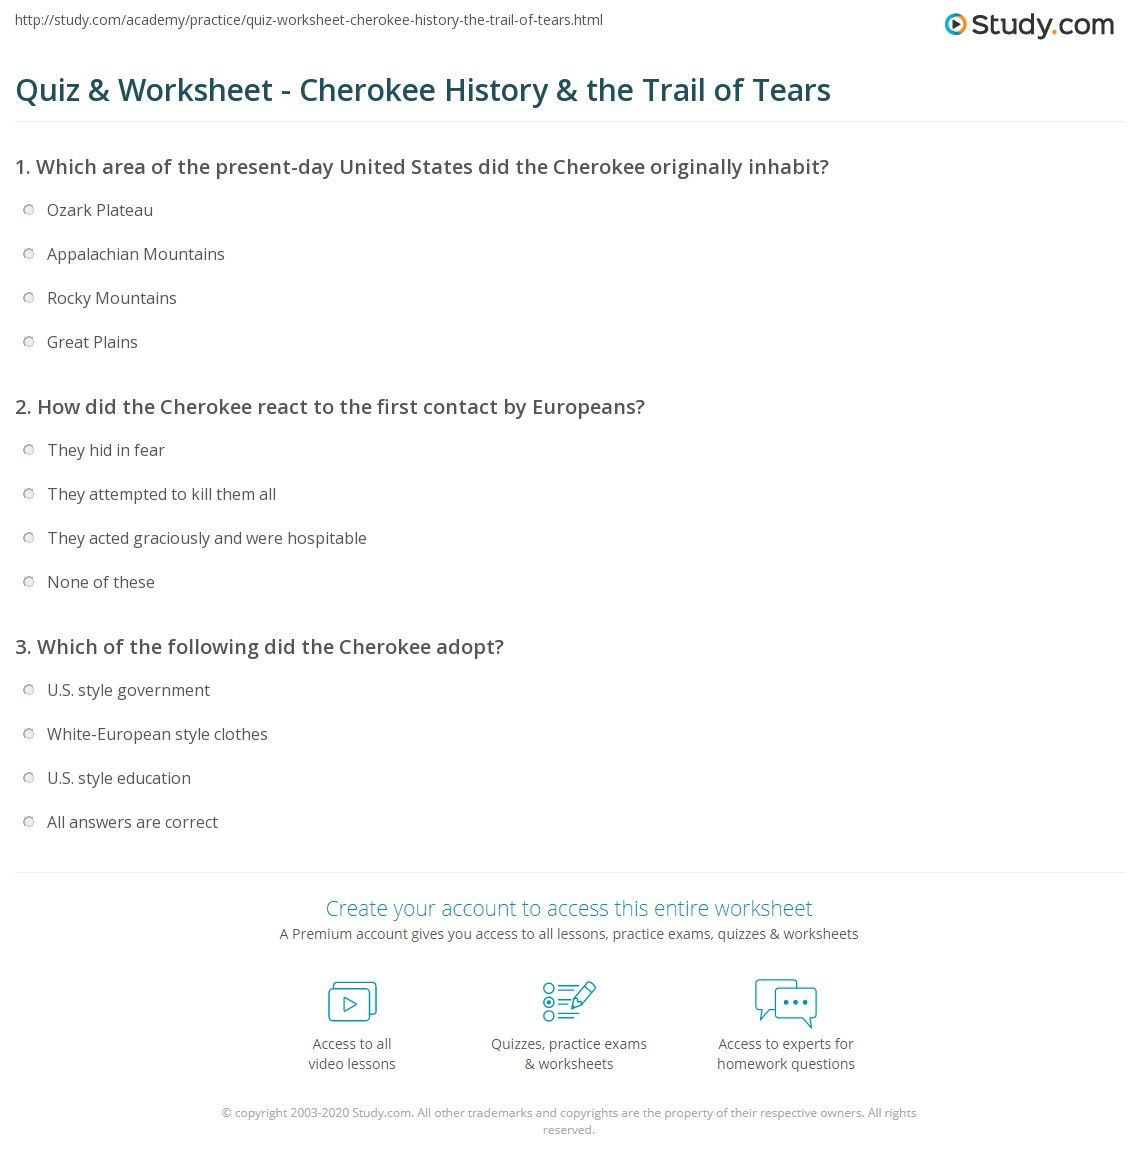 Aldiablosus  Sweet Quiz Amp Worksheet  Cherokee History Amp The Trail Of Tears  Studycom With Hot Print The Cherokee Amp The Trail Of Tears History Timeline Amp Summary Worksheet With Nice Rates Worksheets Also Compare And Contrast Two Stories Worksheets In Addition Basic Multiplication And Division Worksheets And Los Meses Del Ano Worksheet As Well As Round Decimals Worksheet Additionally Direct Inverse Variation Worksheet From Studycom With Aldiablosus  Hot Quiz Amp Worksheet  Cherokee History Amp The Trail Of Tears  Studycom With Nice Print The Cherokee Amp The Trail Of Tears History Timeline Amp Summary Worksheet And Sweet Rates Worksheets Also Compare And Contrast Two Stories Worksheets In Addition Basic Multiplication And Division Worksheets From Studycom